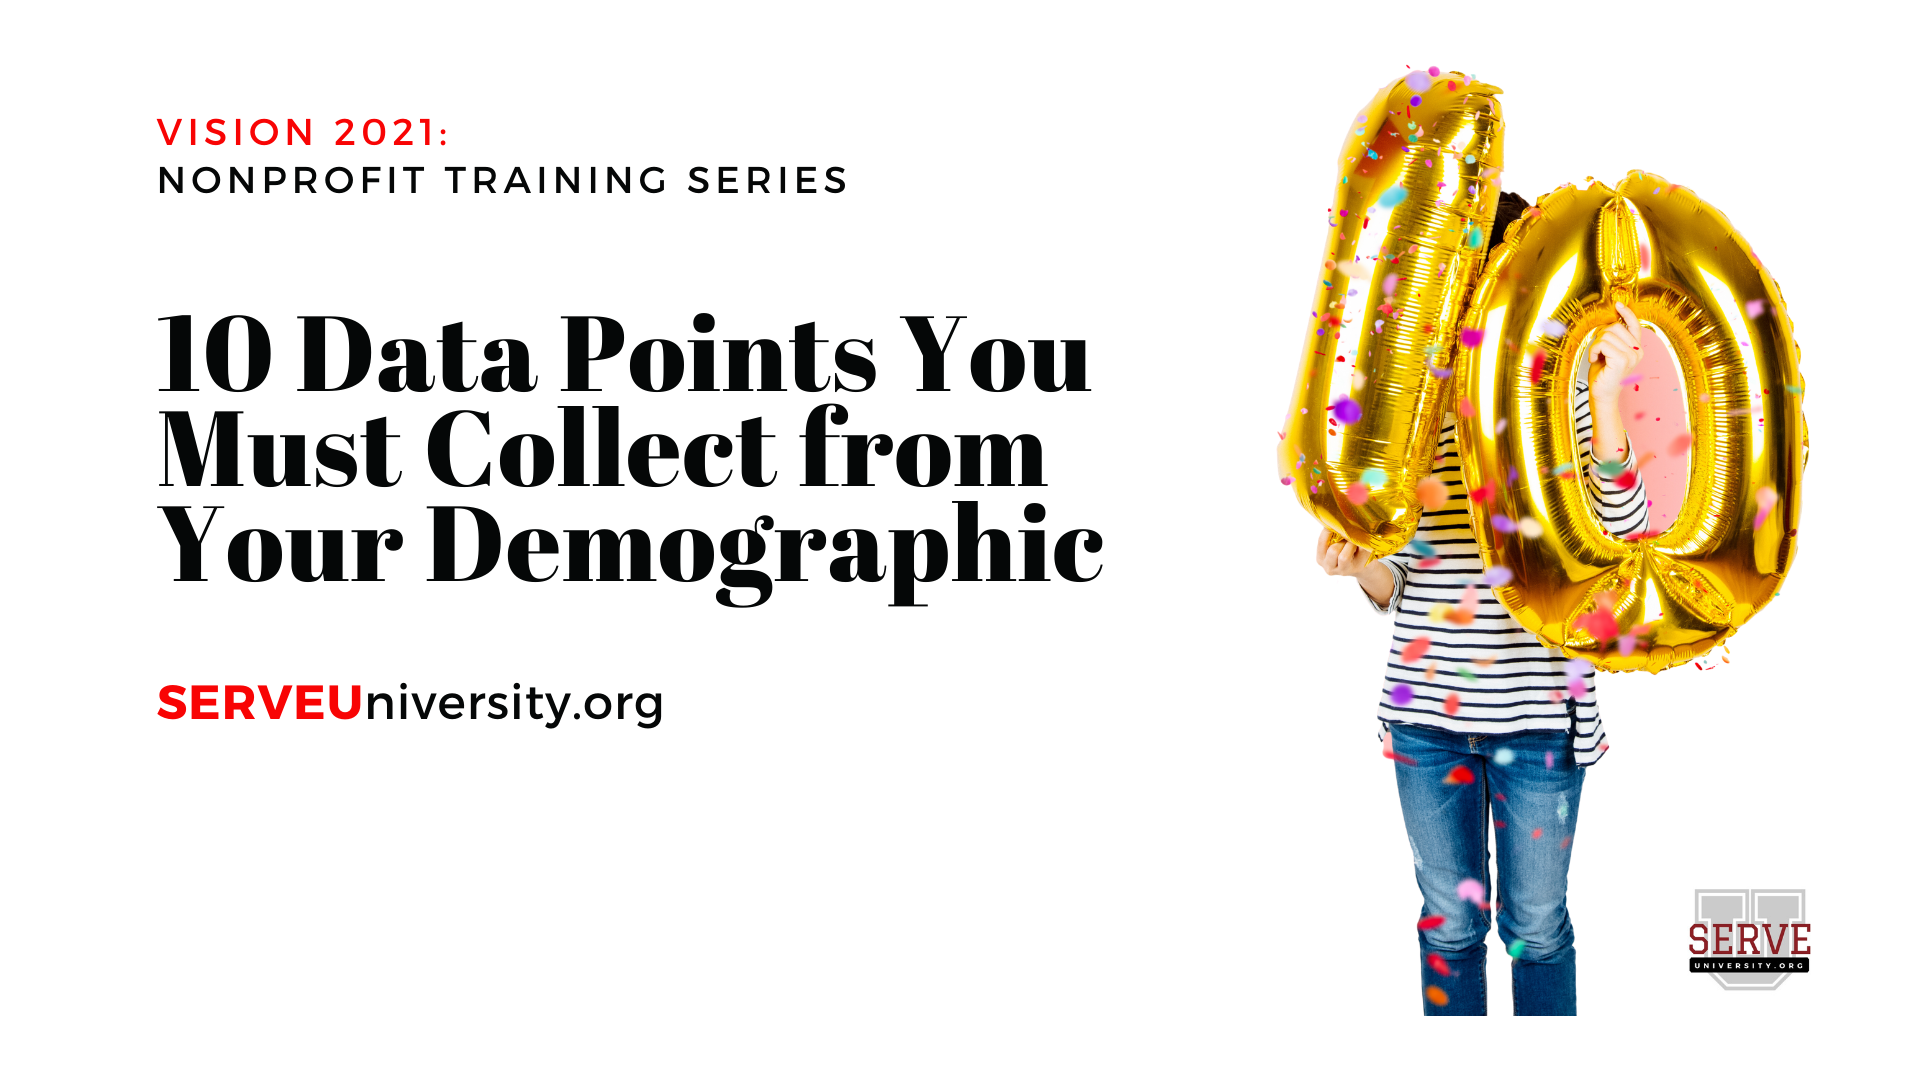 10 Data Points You Must Collect from Your Demographic in 2021